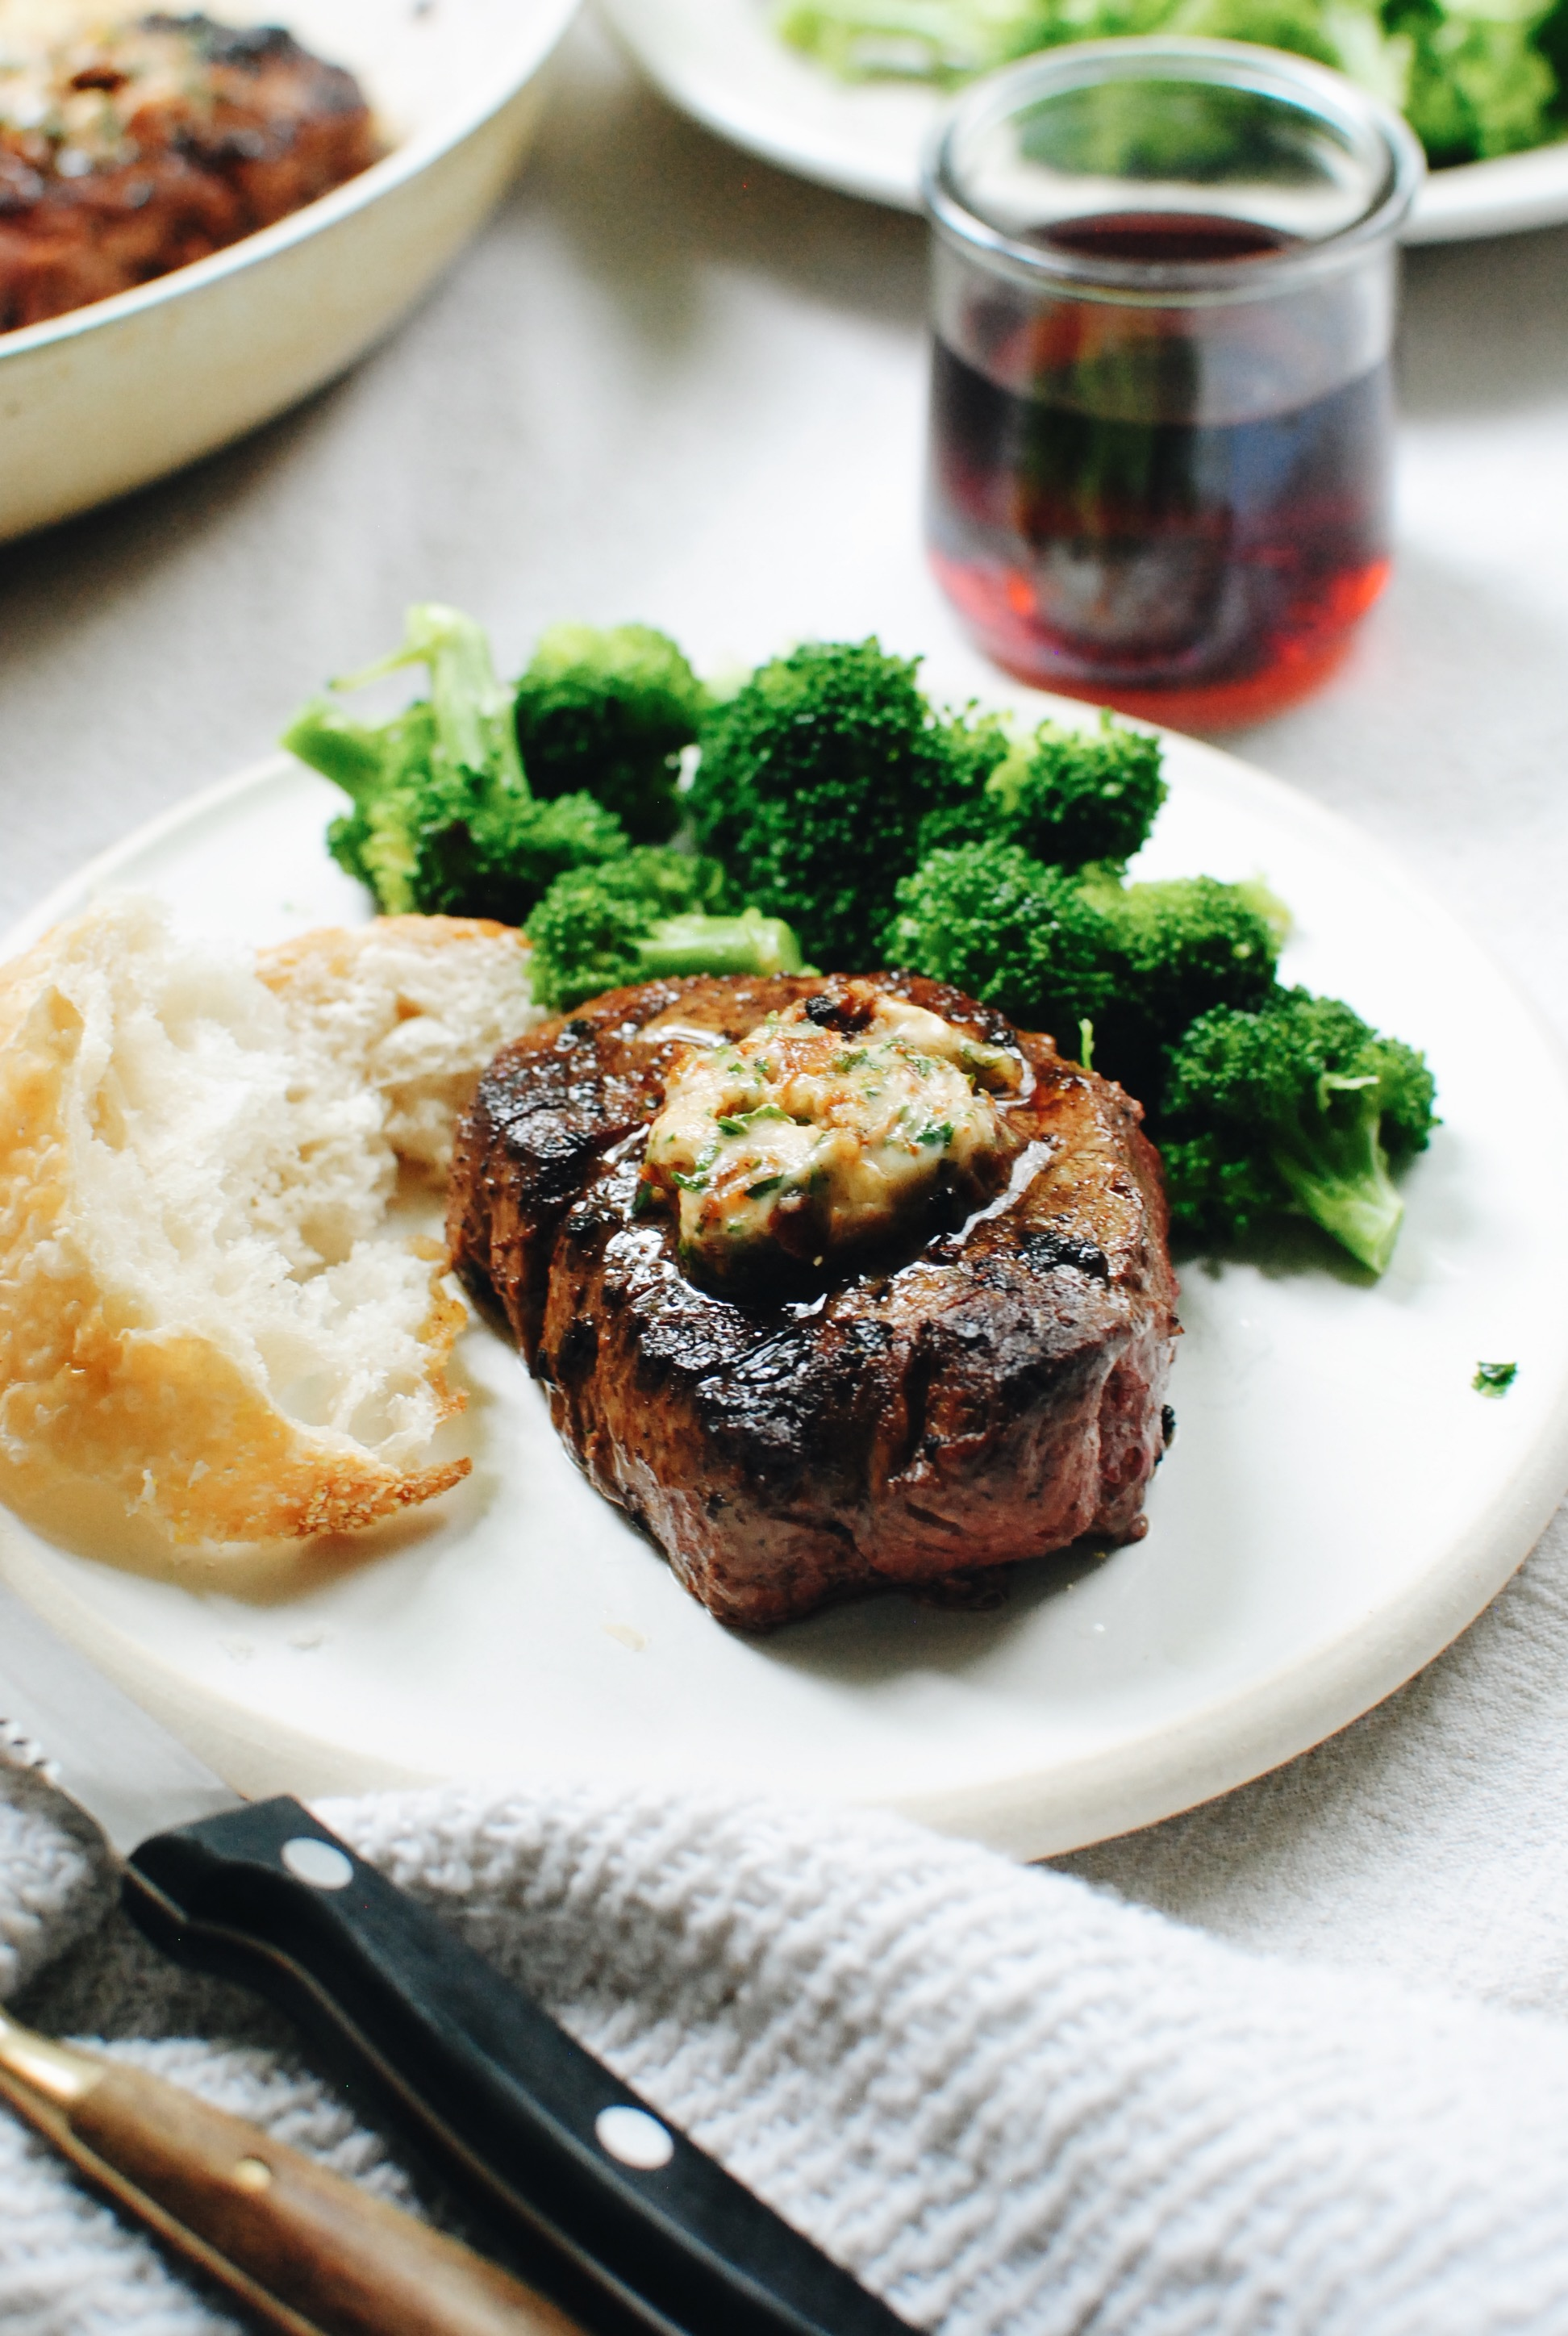 Seared Filet Mignons with a Sun-Dried Tomato Butter / Bev Cooks